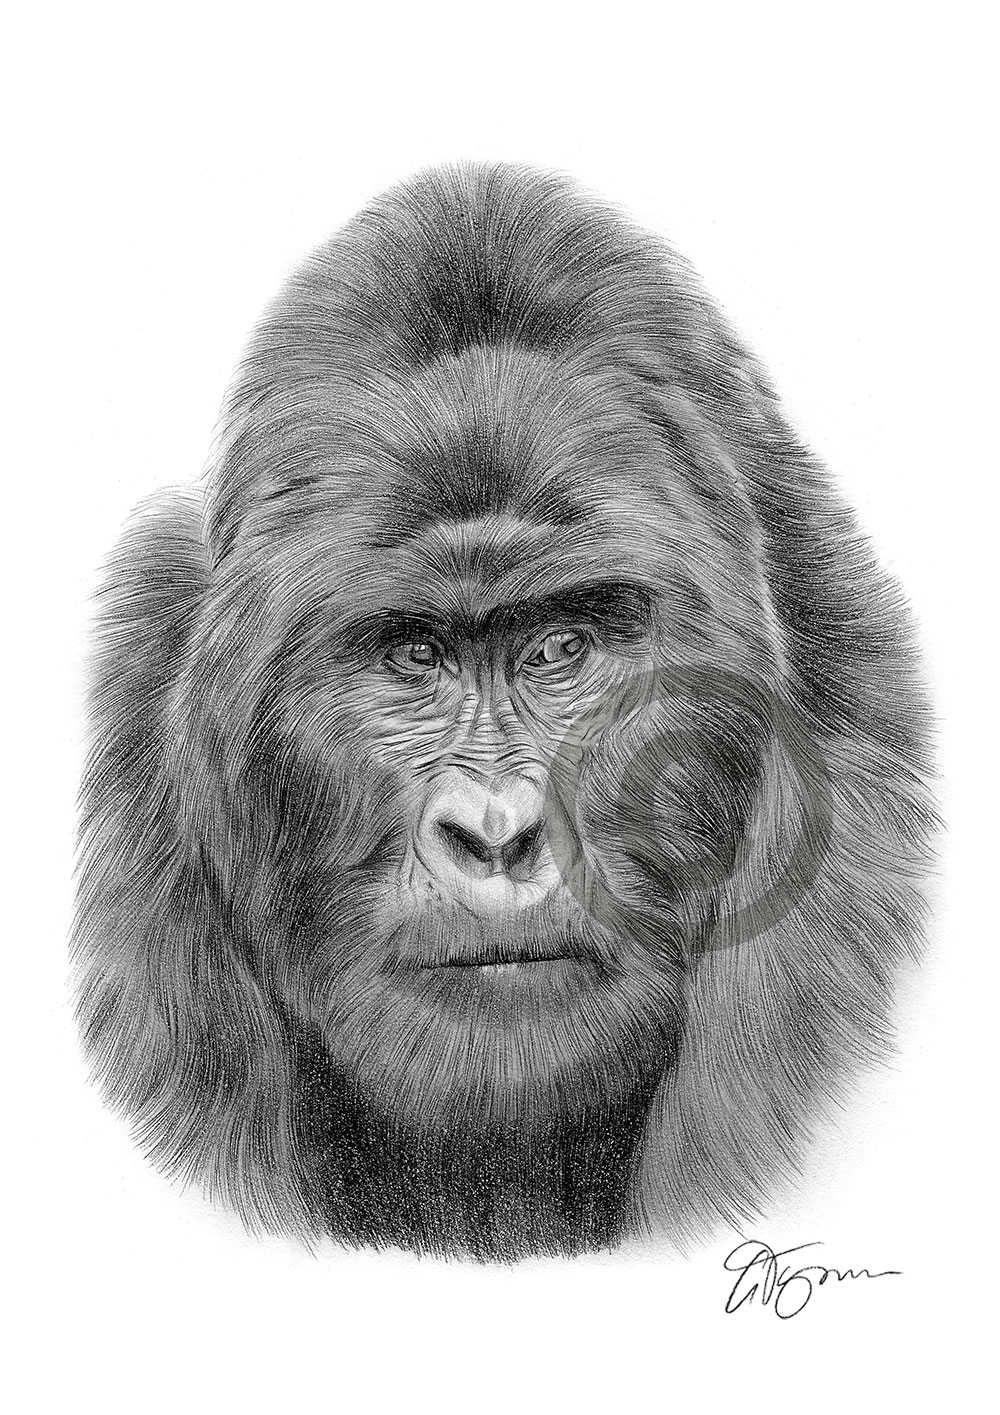 It is a graphic of Dramatic Drawing Of A Gorilla